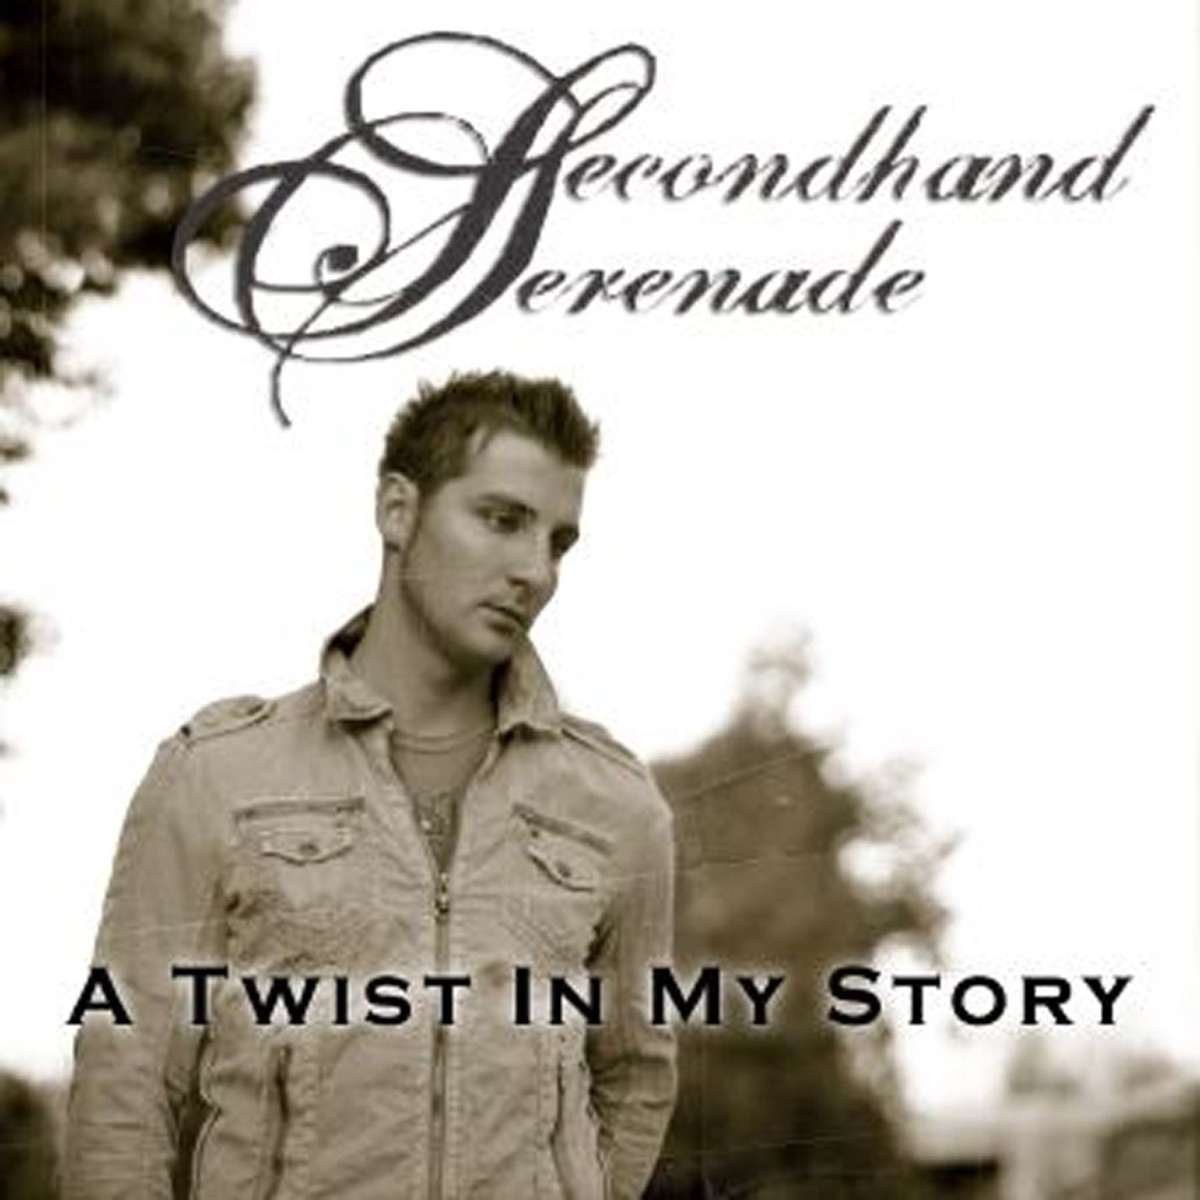 A Twist In My Story - Single Album Cover by Secondhand Serenade